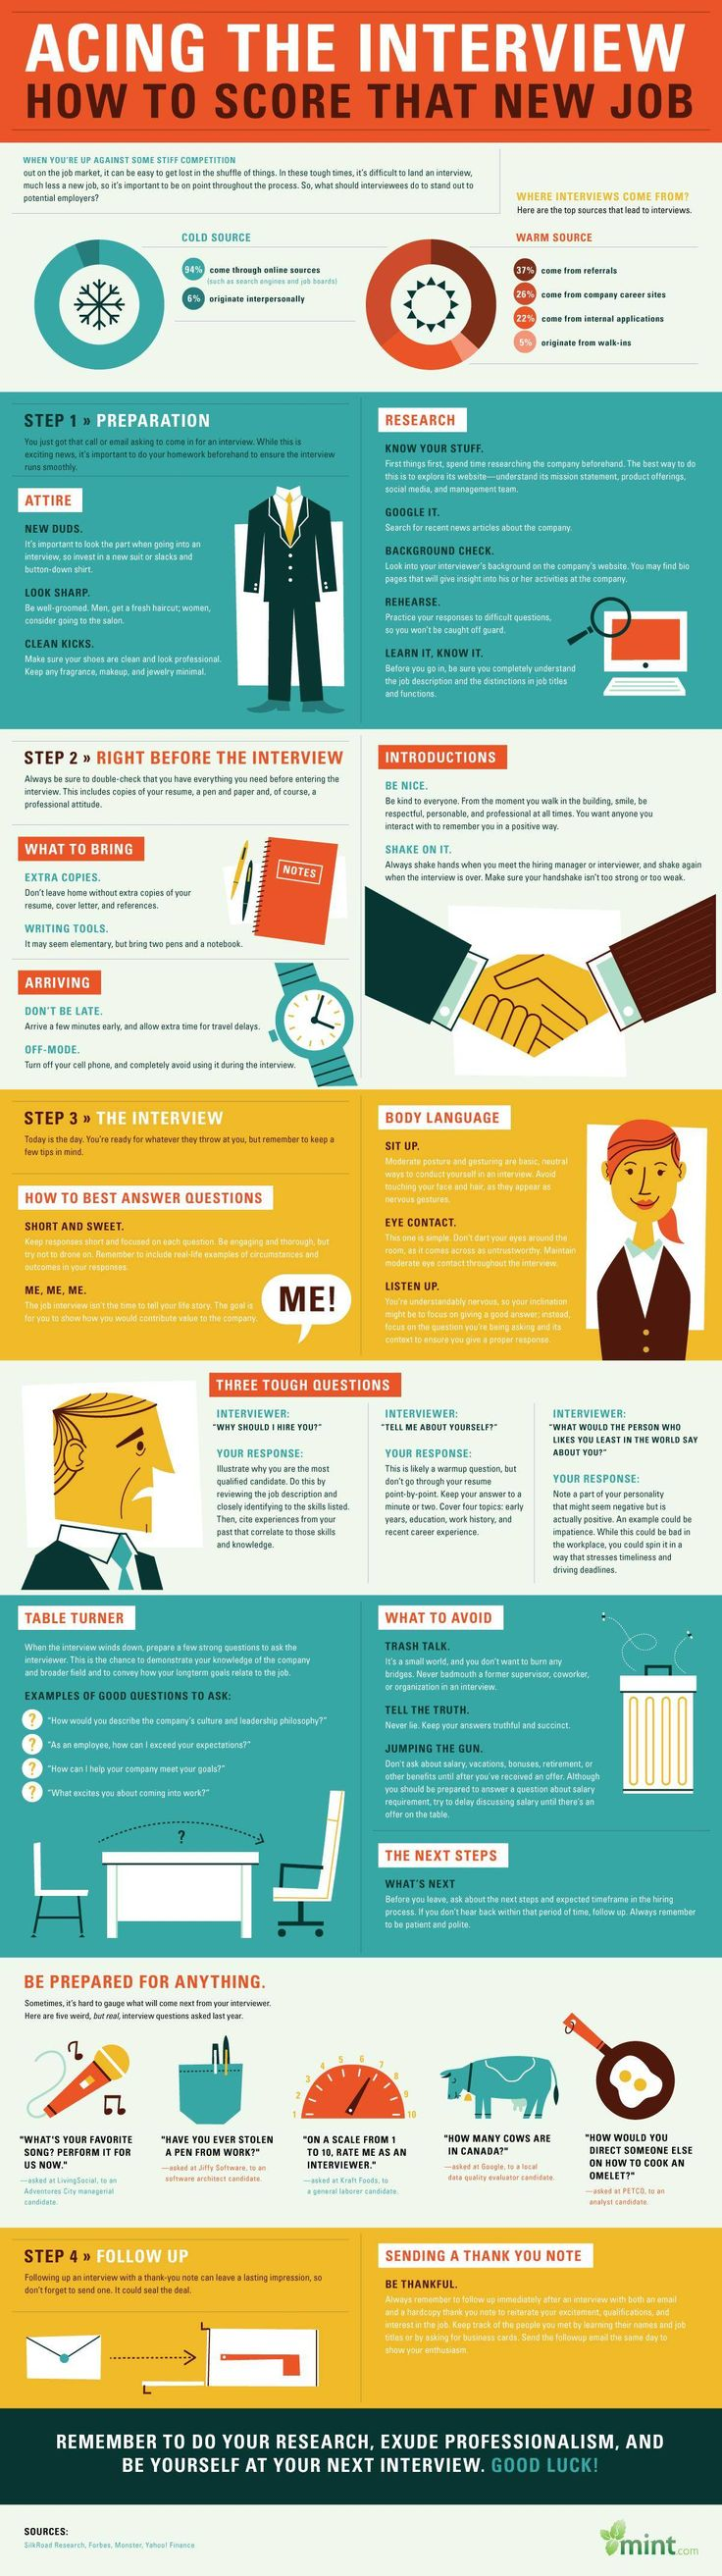 infographic : How to Interview – Top Tips for Acing a Job Interview [INFOGRAPHIC] | JobCluster…